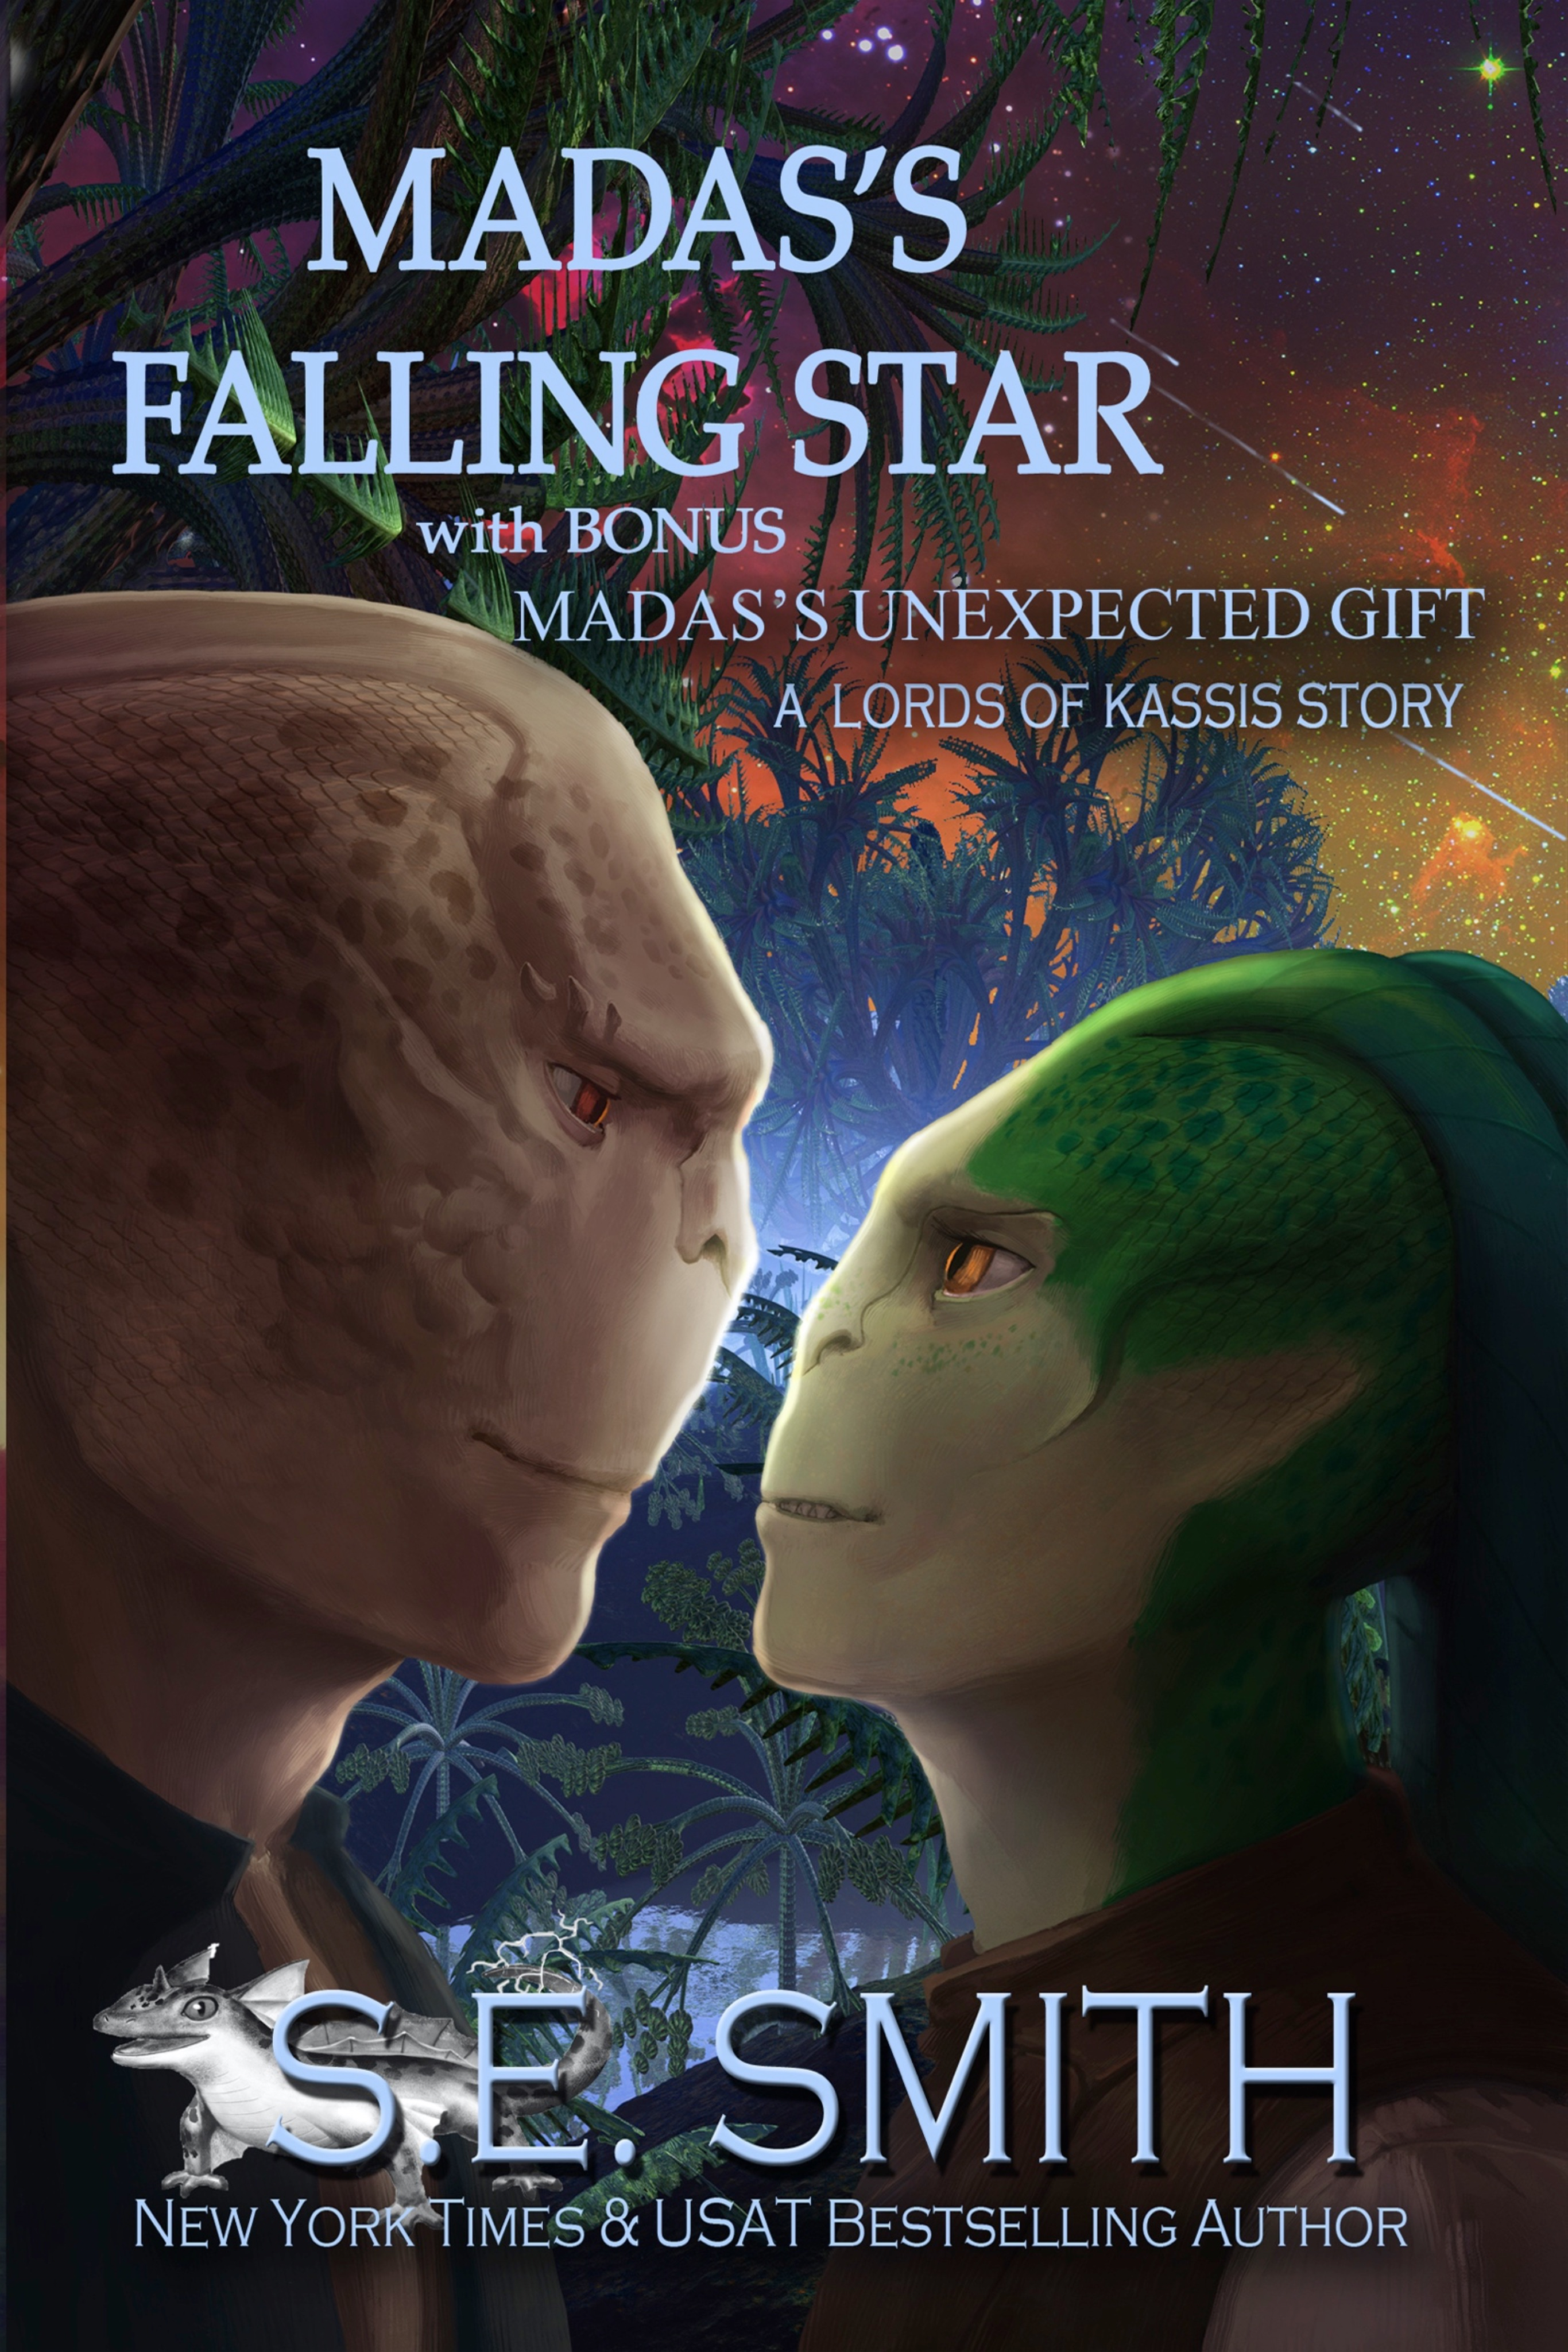 Madas's Falling Star featuring Madas's Unexpected Gift: Lords of Kassis Book 5 (ebook: mobi & epub)